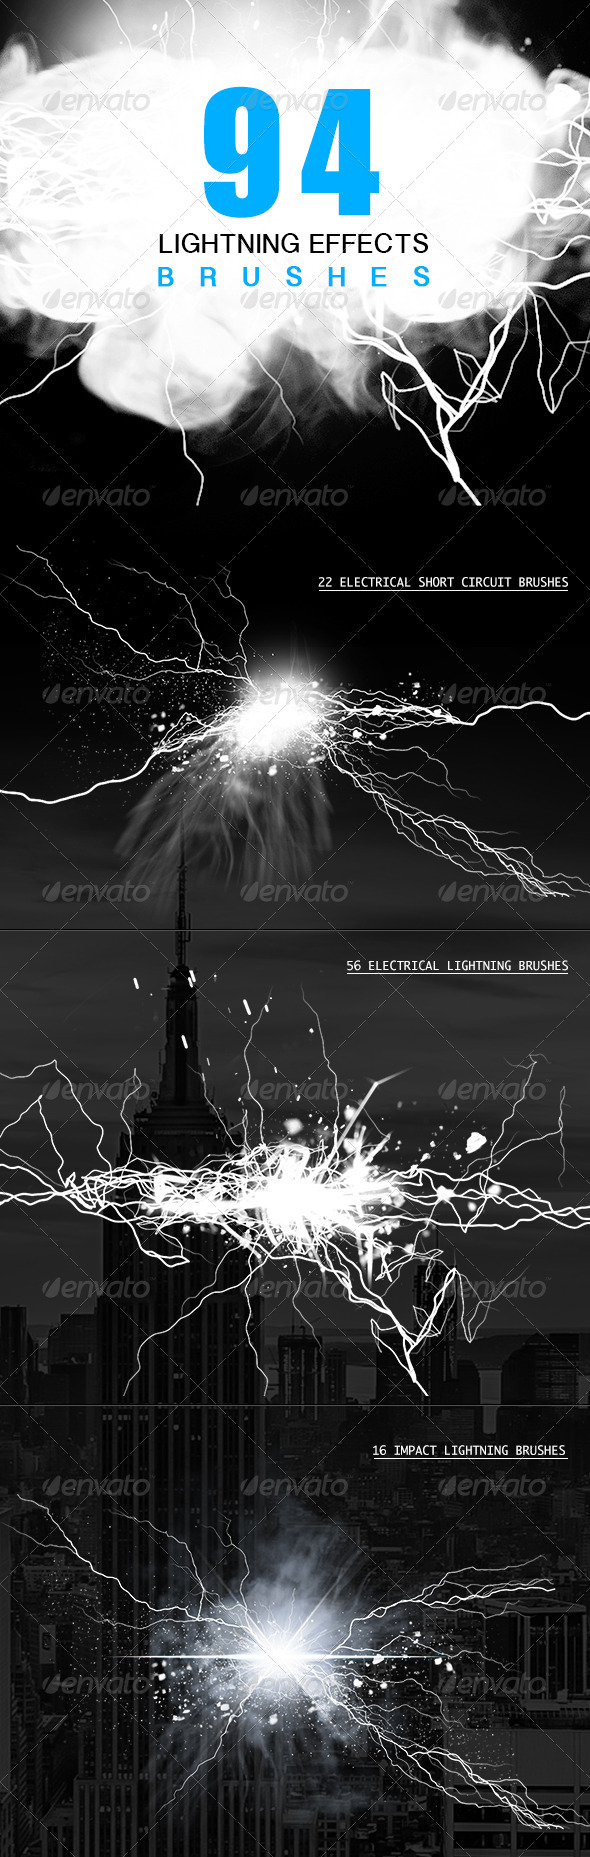 GraphicRiver Electrical Lightning Brushes 4920509